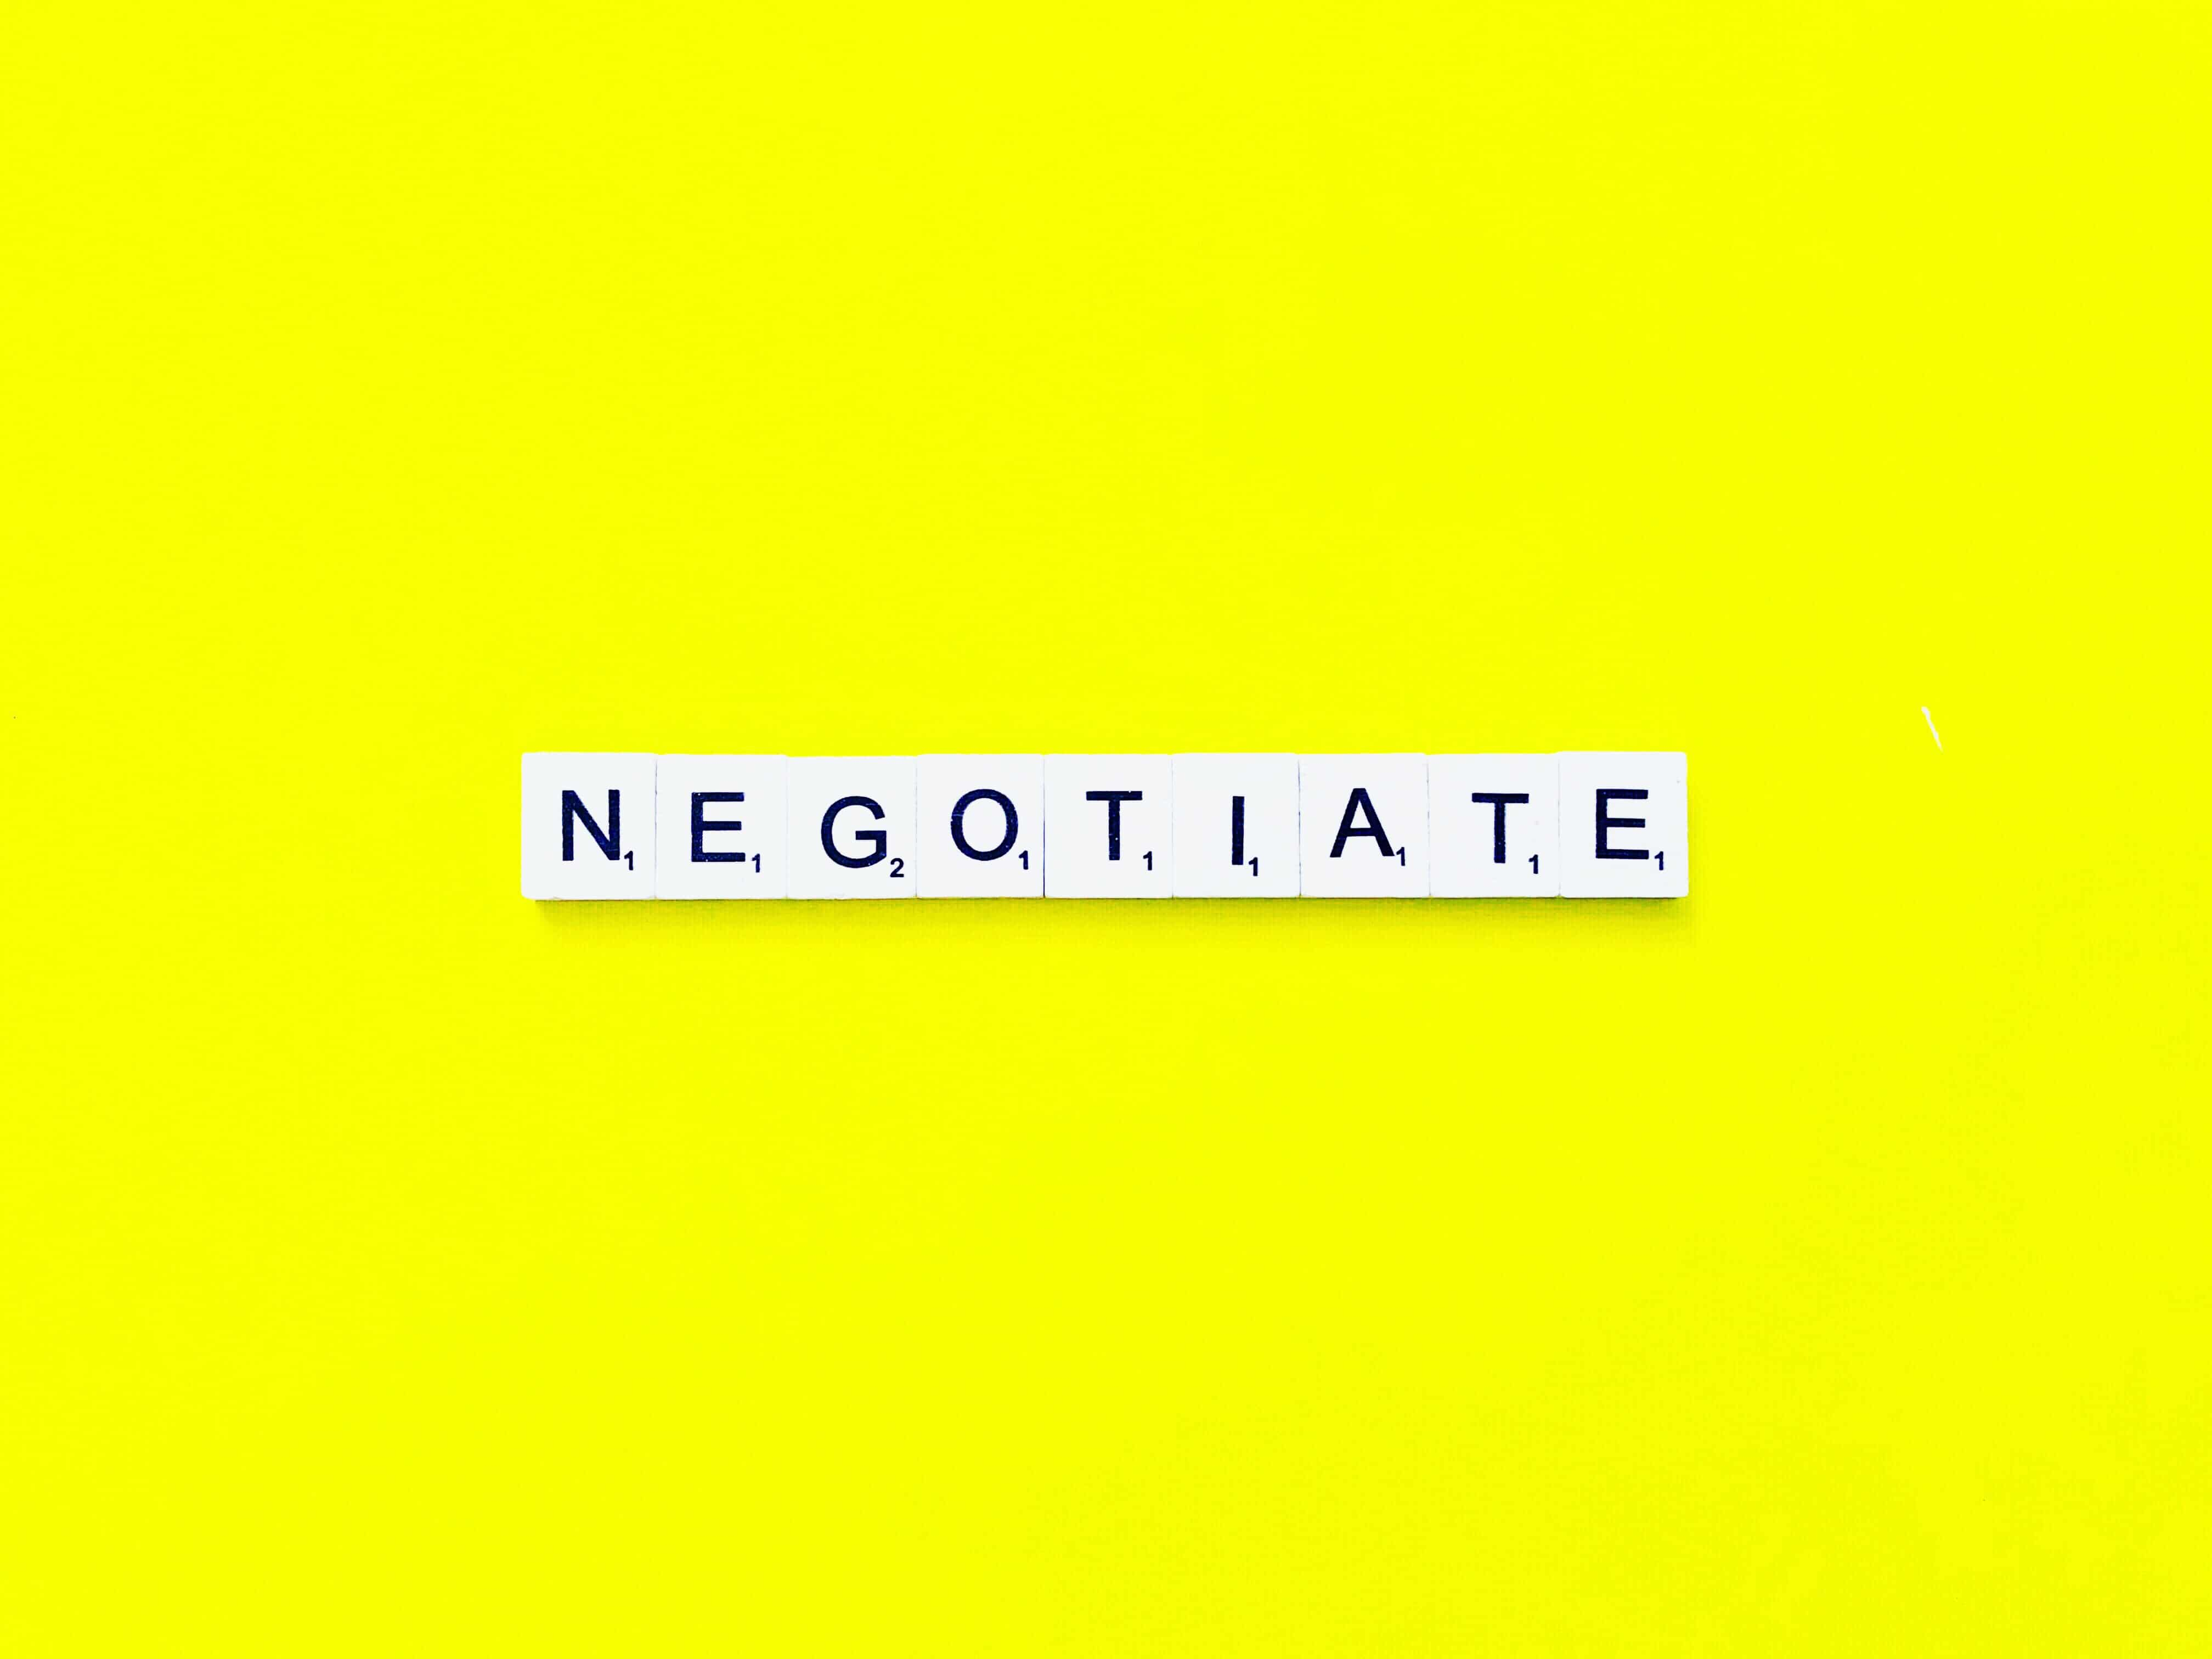 how-to-negotiate-can-employees-discuss-wages-alignthoughts